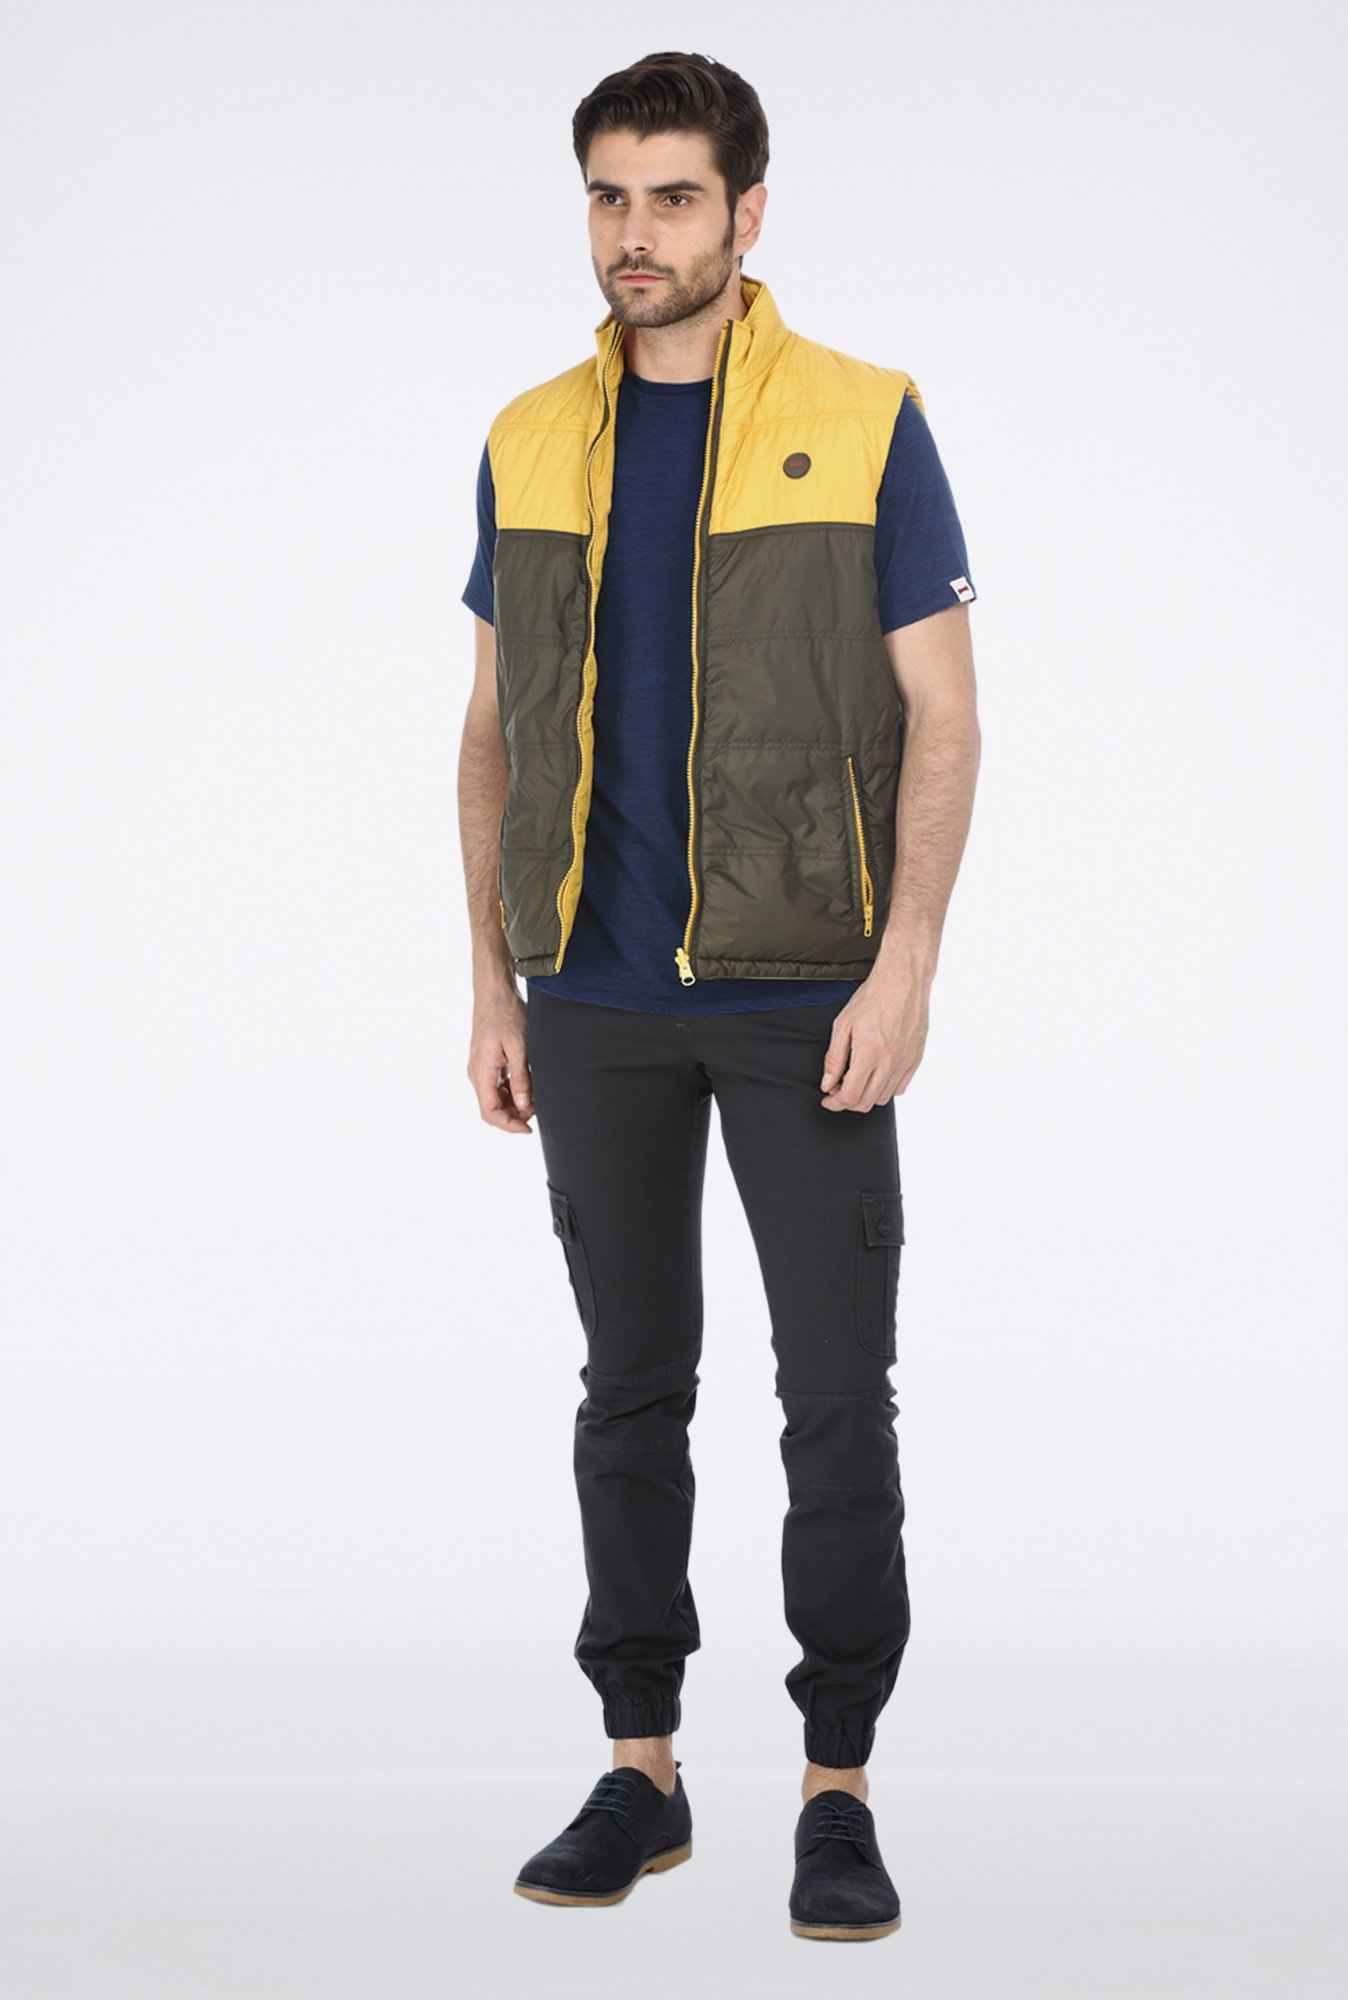 Basics Aspen Gold Reversible Jacket